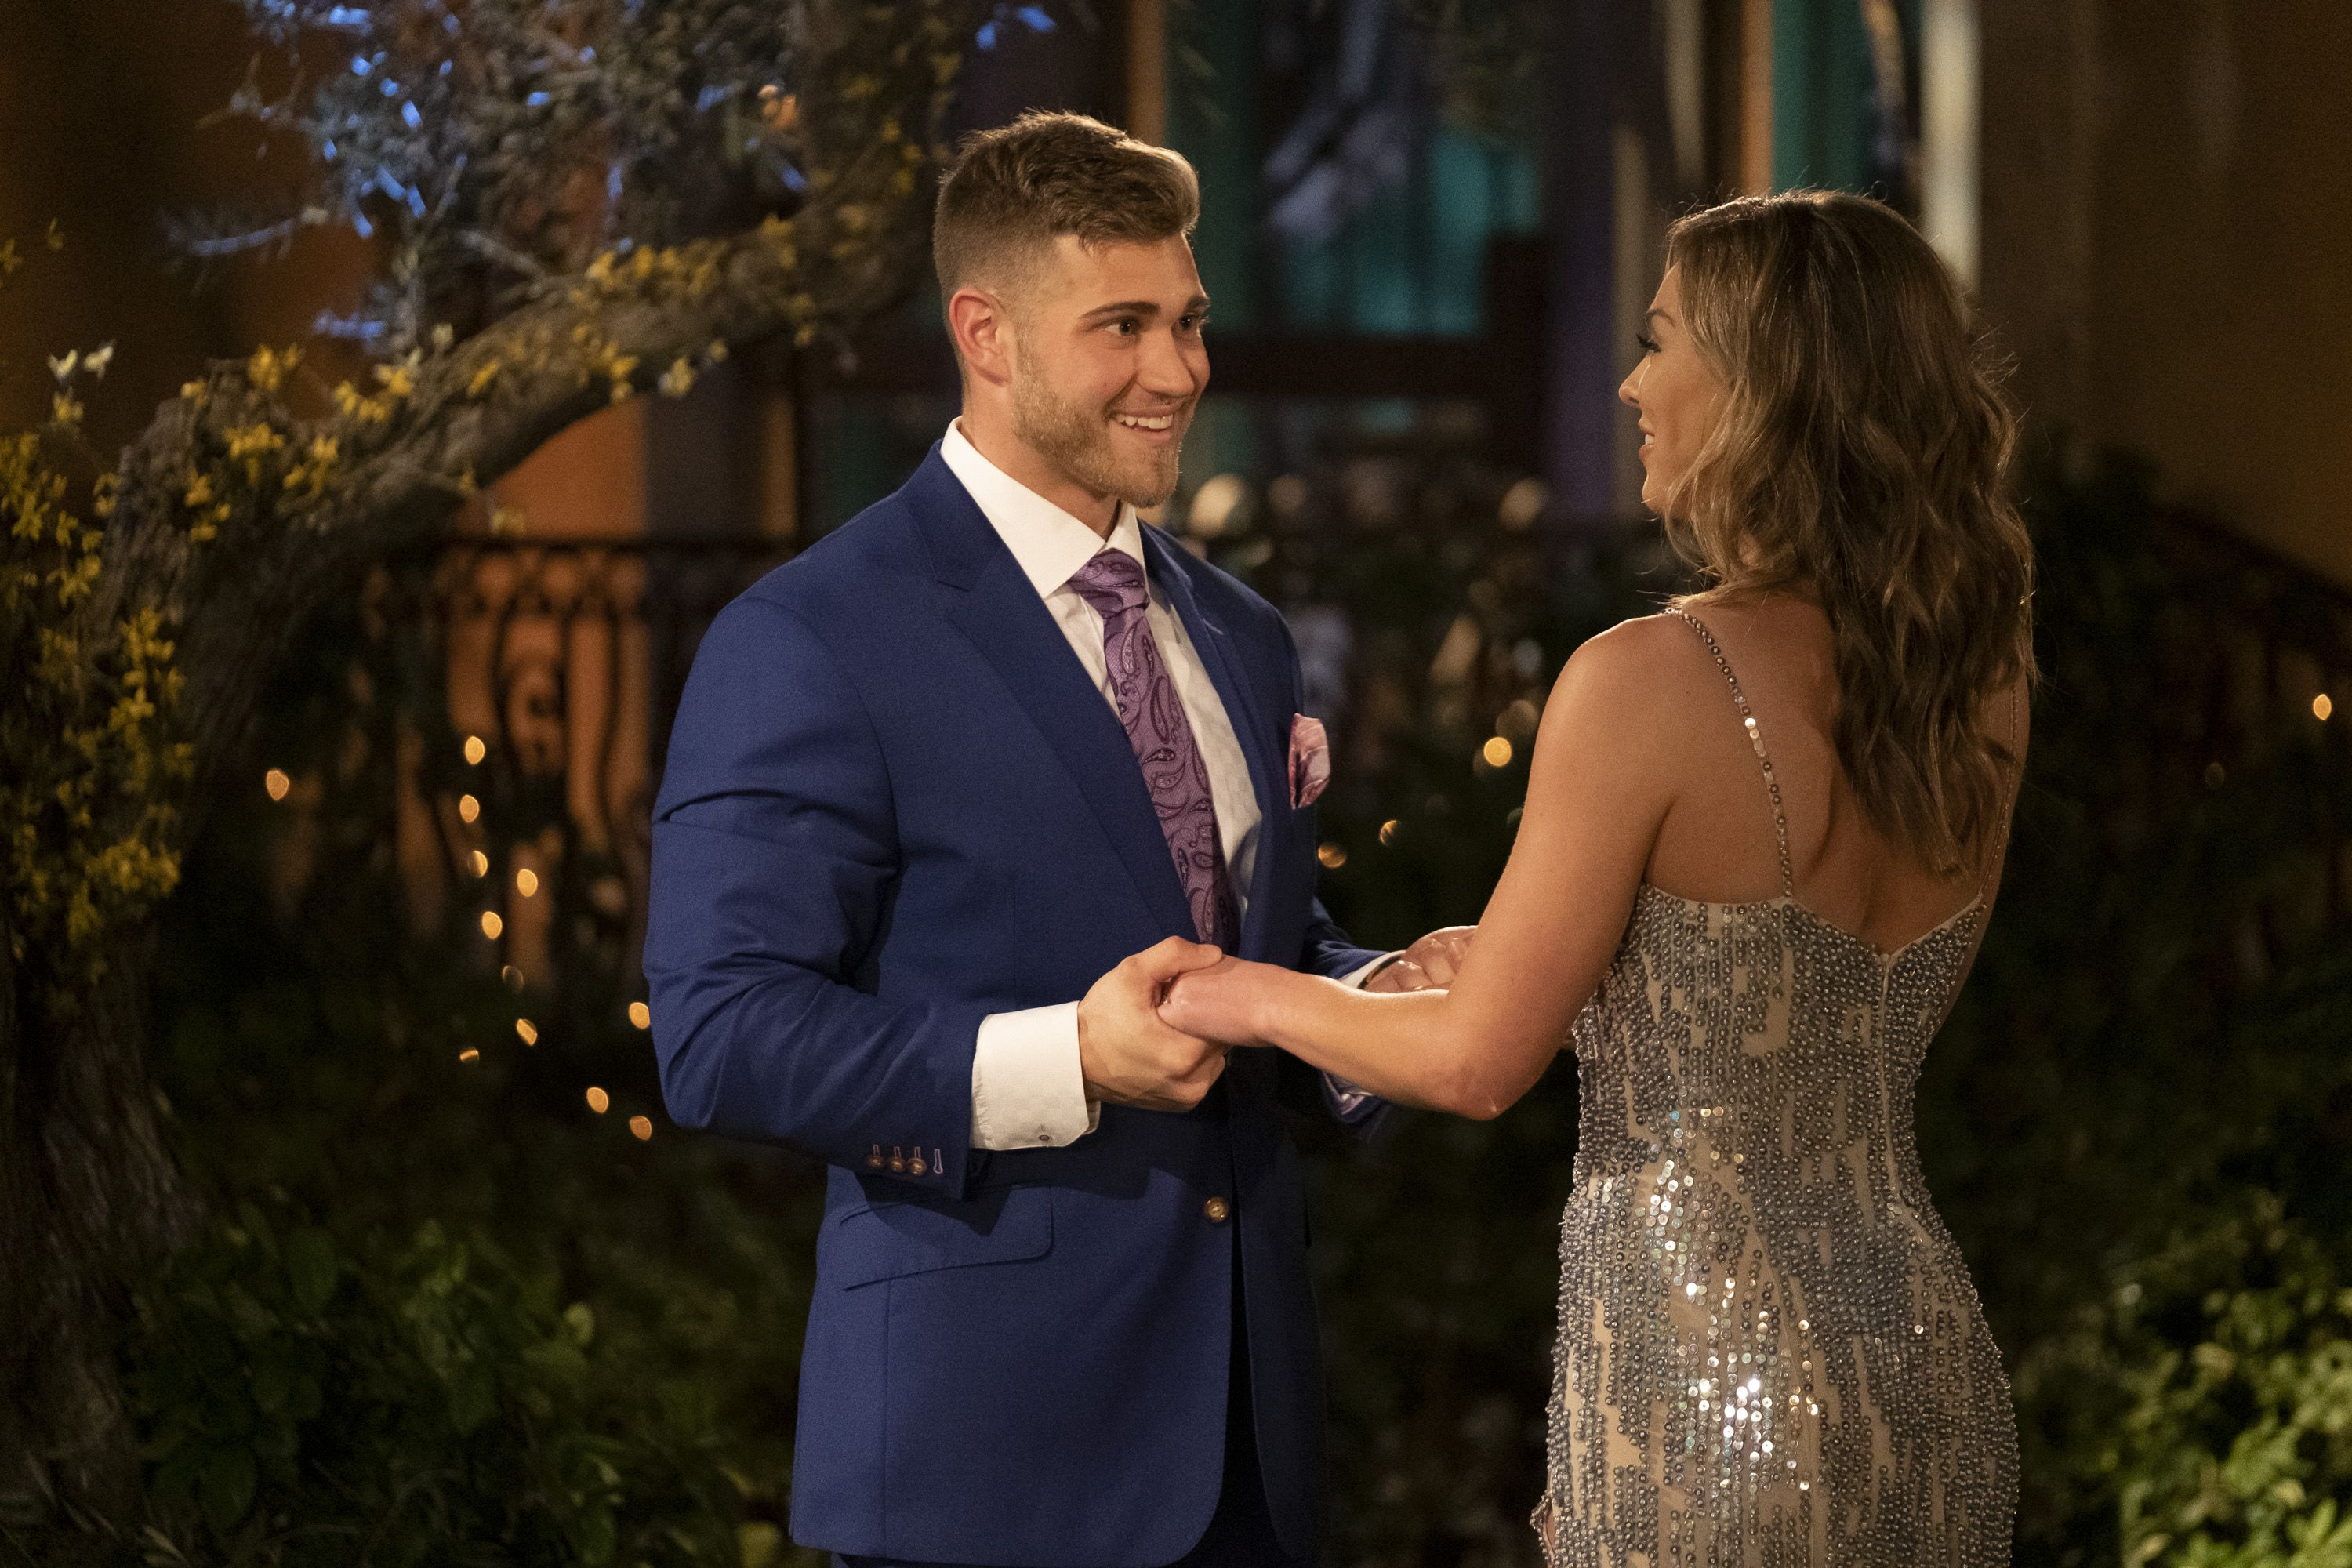 Reactions to That Luke P. Moment on 'The Bachelorette' Are Apocalyptic